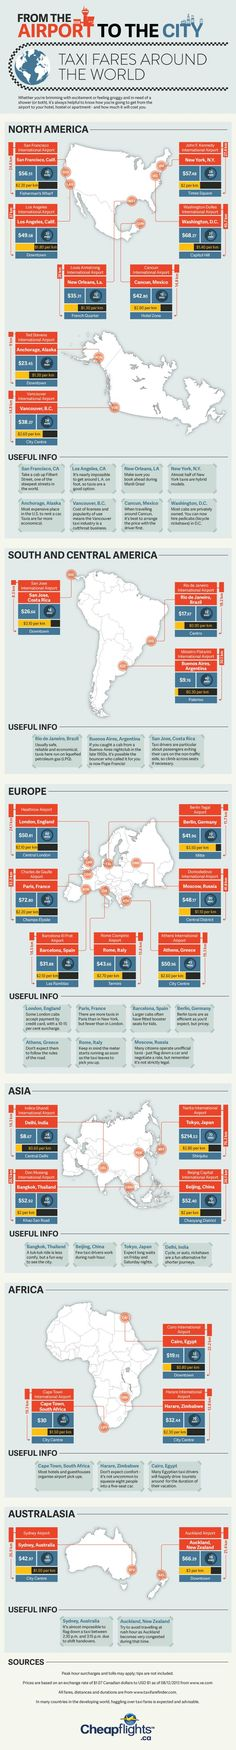 From the Airport to the City Taxi Fares Around the World #infographic #Travel #TaxiFares